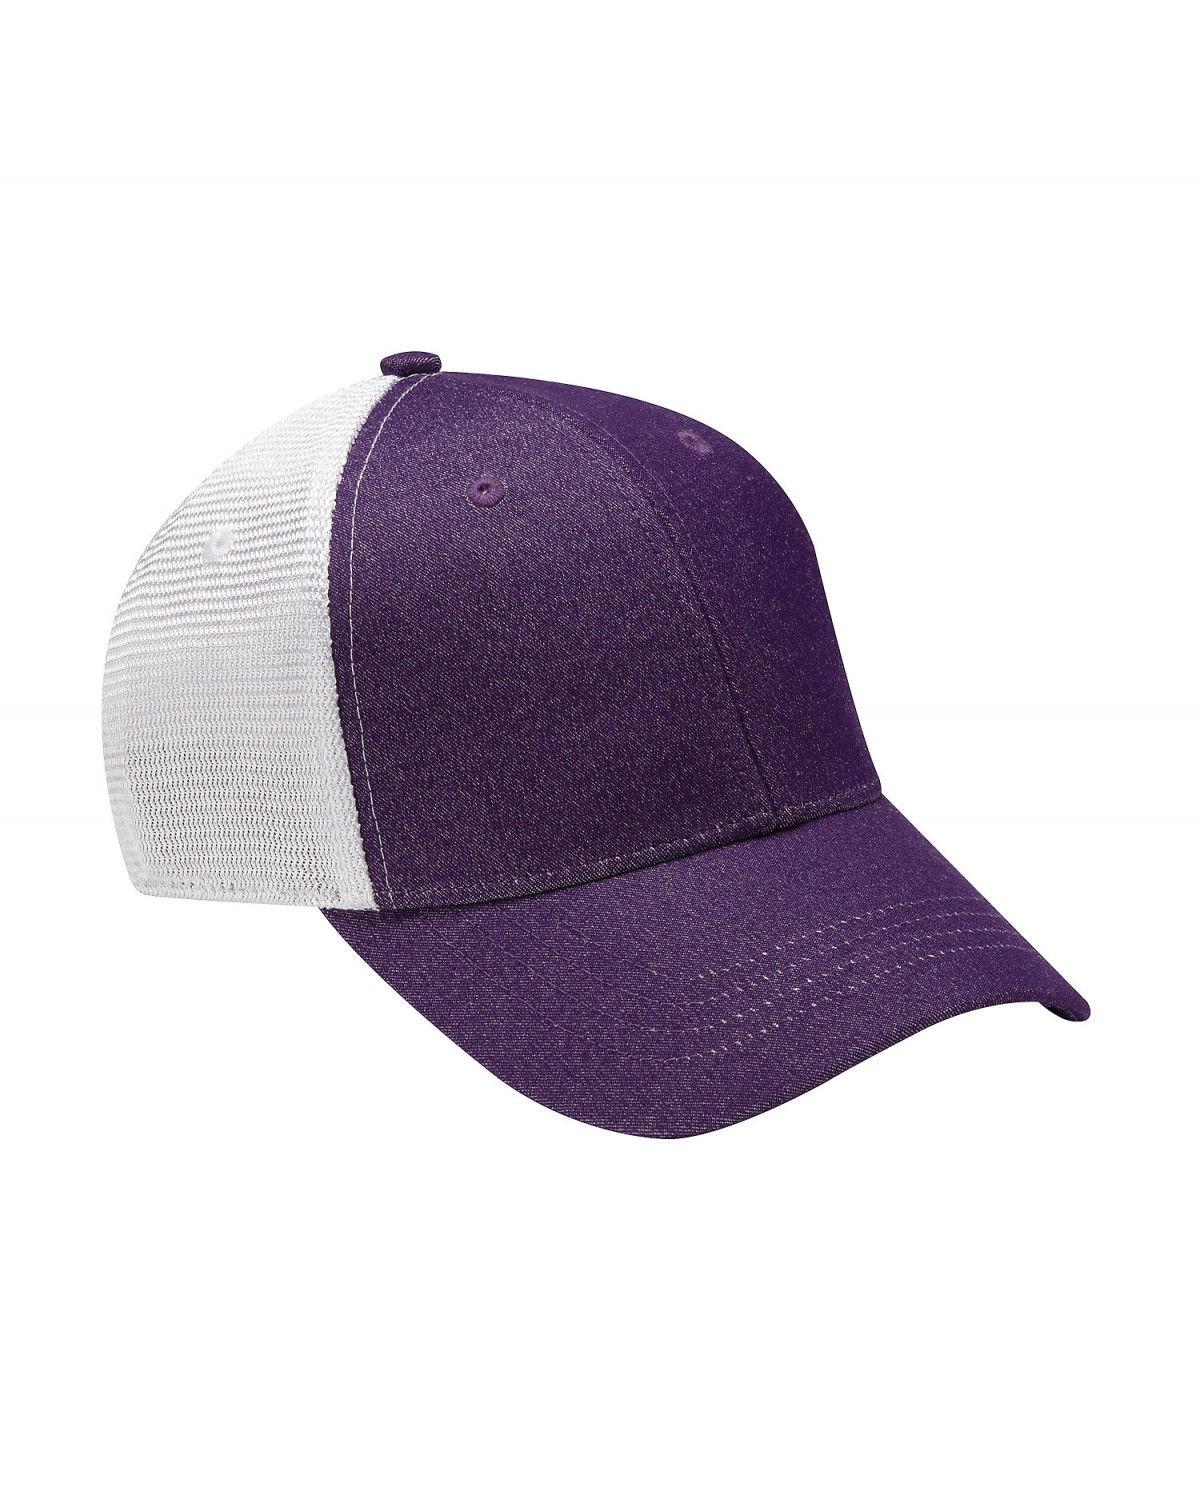 BG3346 Badger Sport GRAPHITE/PURPLE